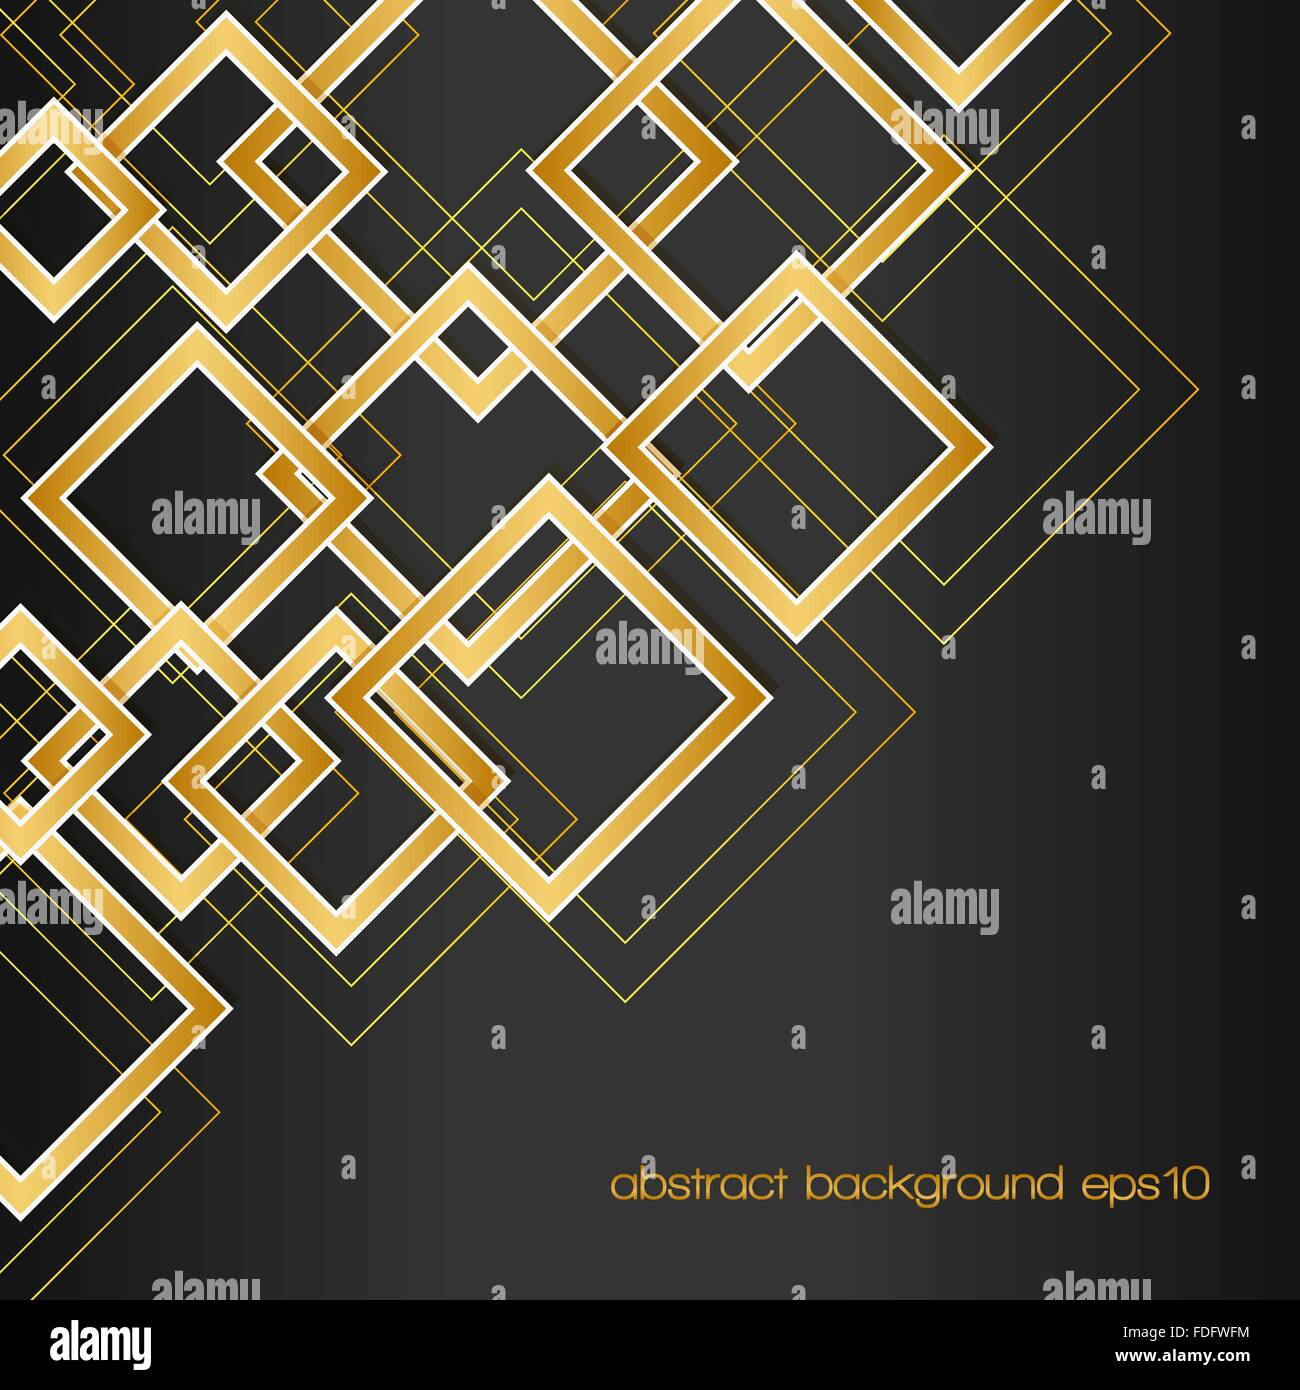 abstract background with golden rhombus frames and lines